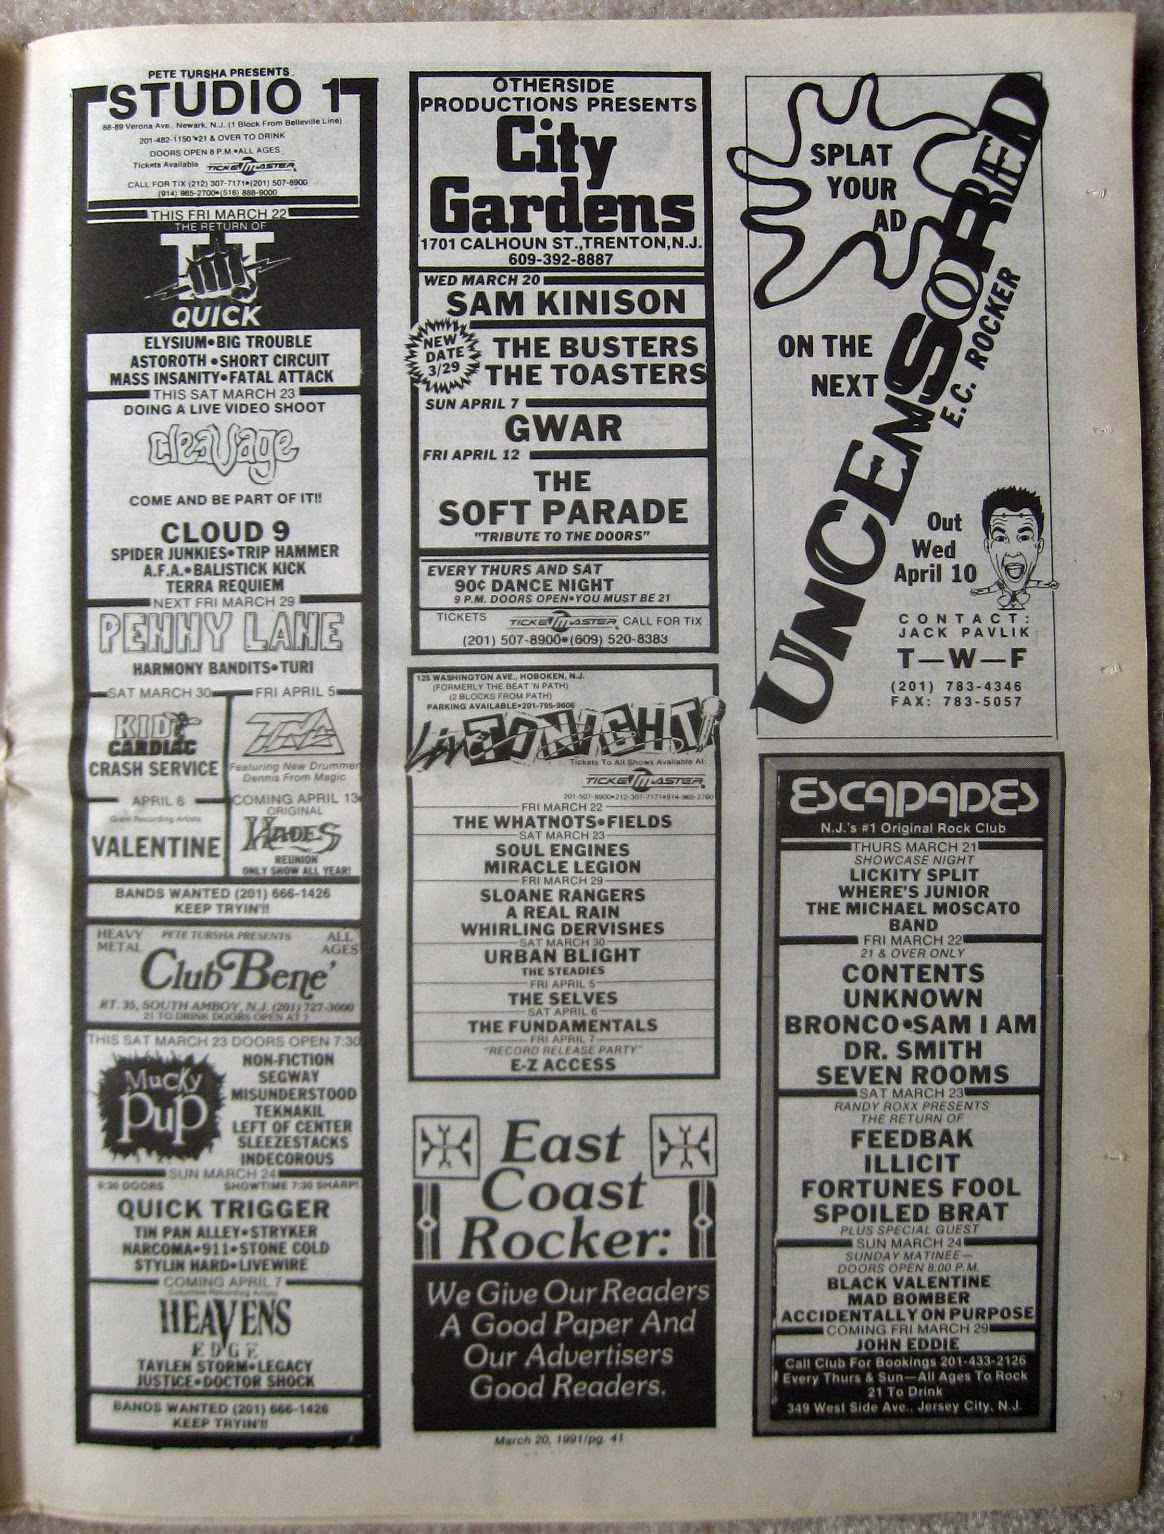 Studio One - Club Bene - City Gardens - Escapades - Live Tonight band line ups 1991